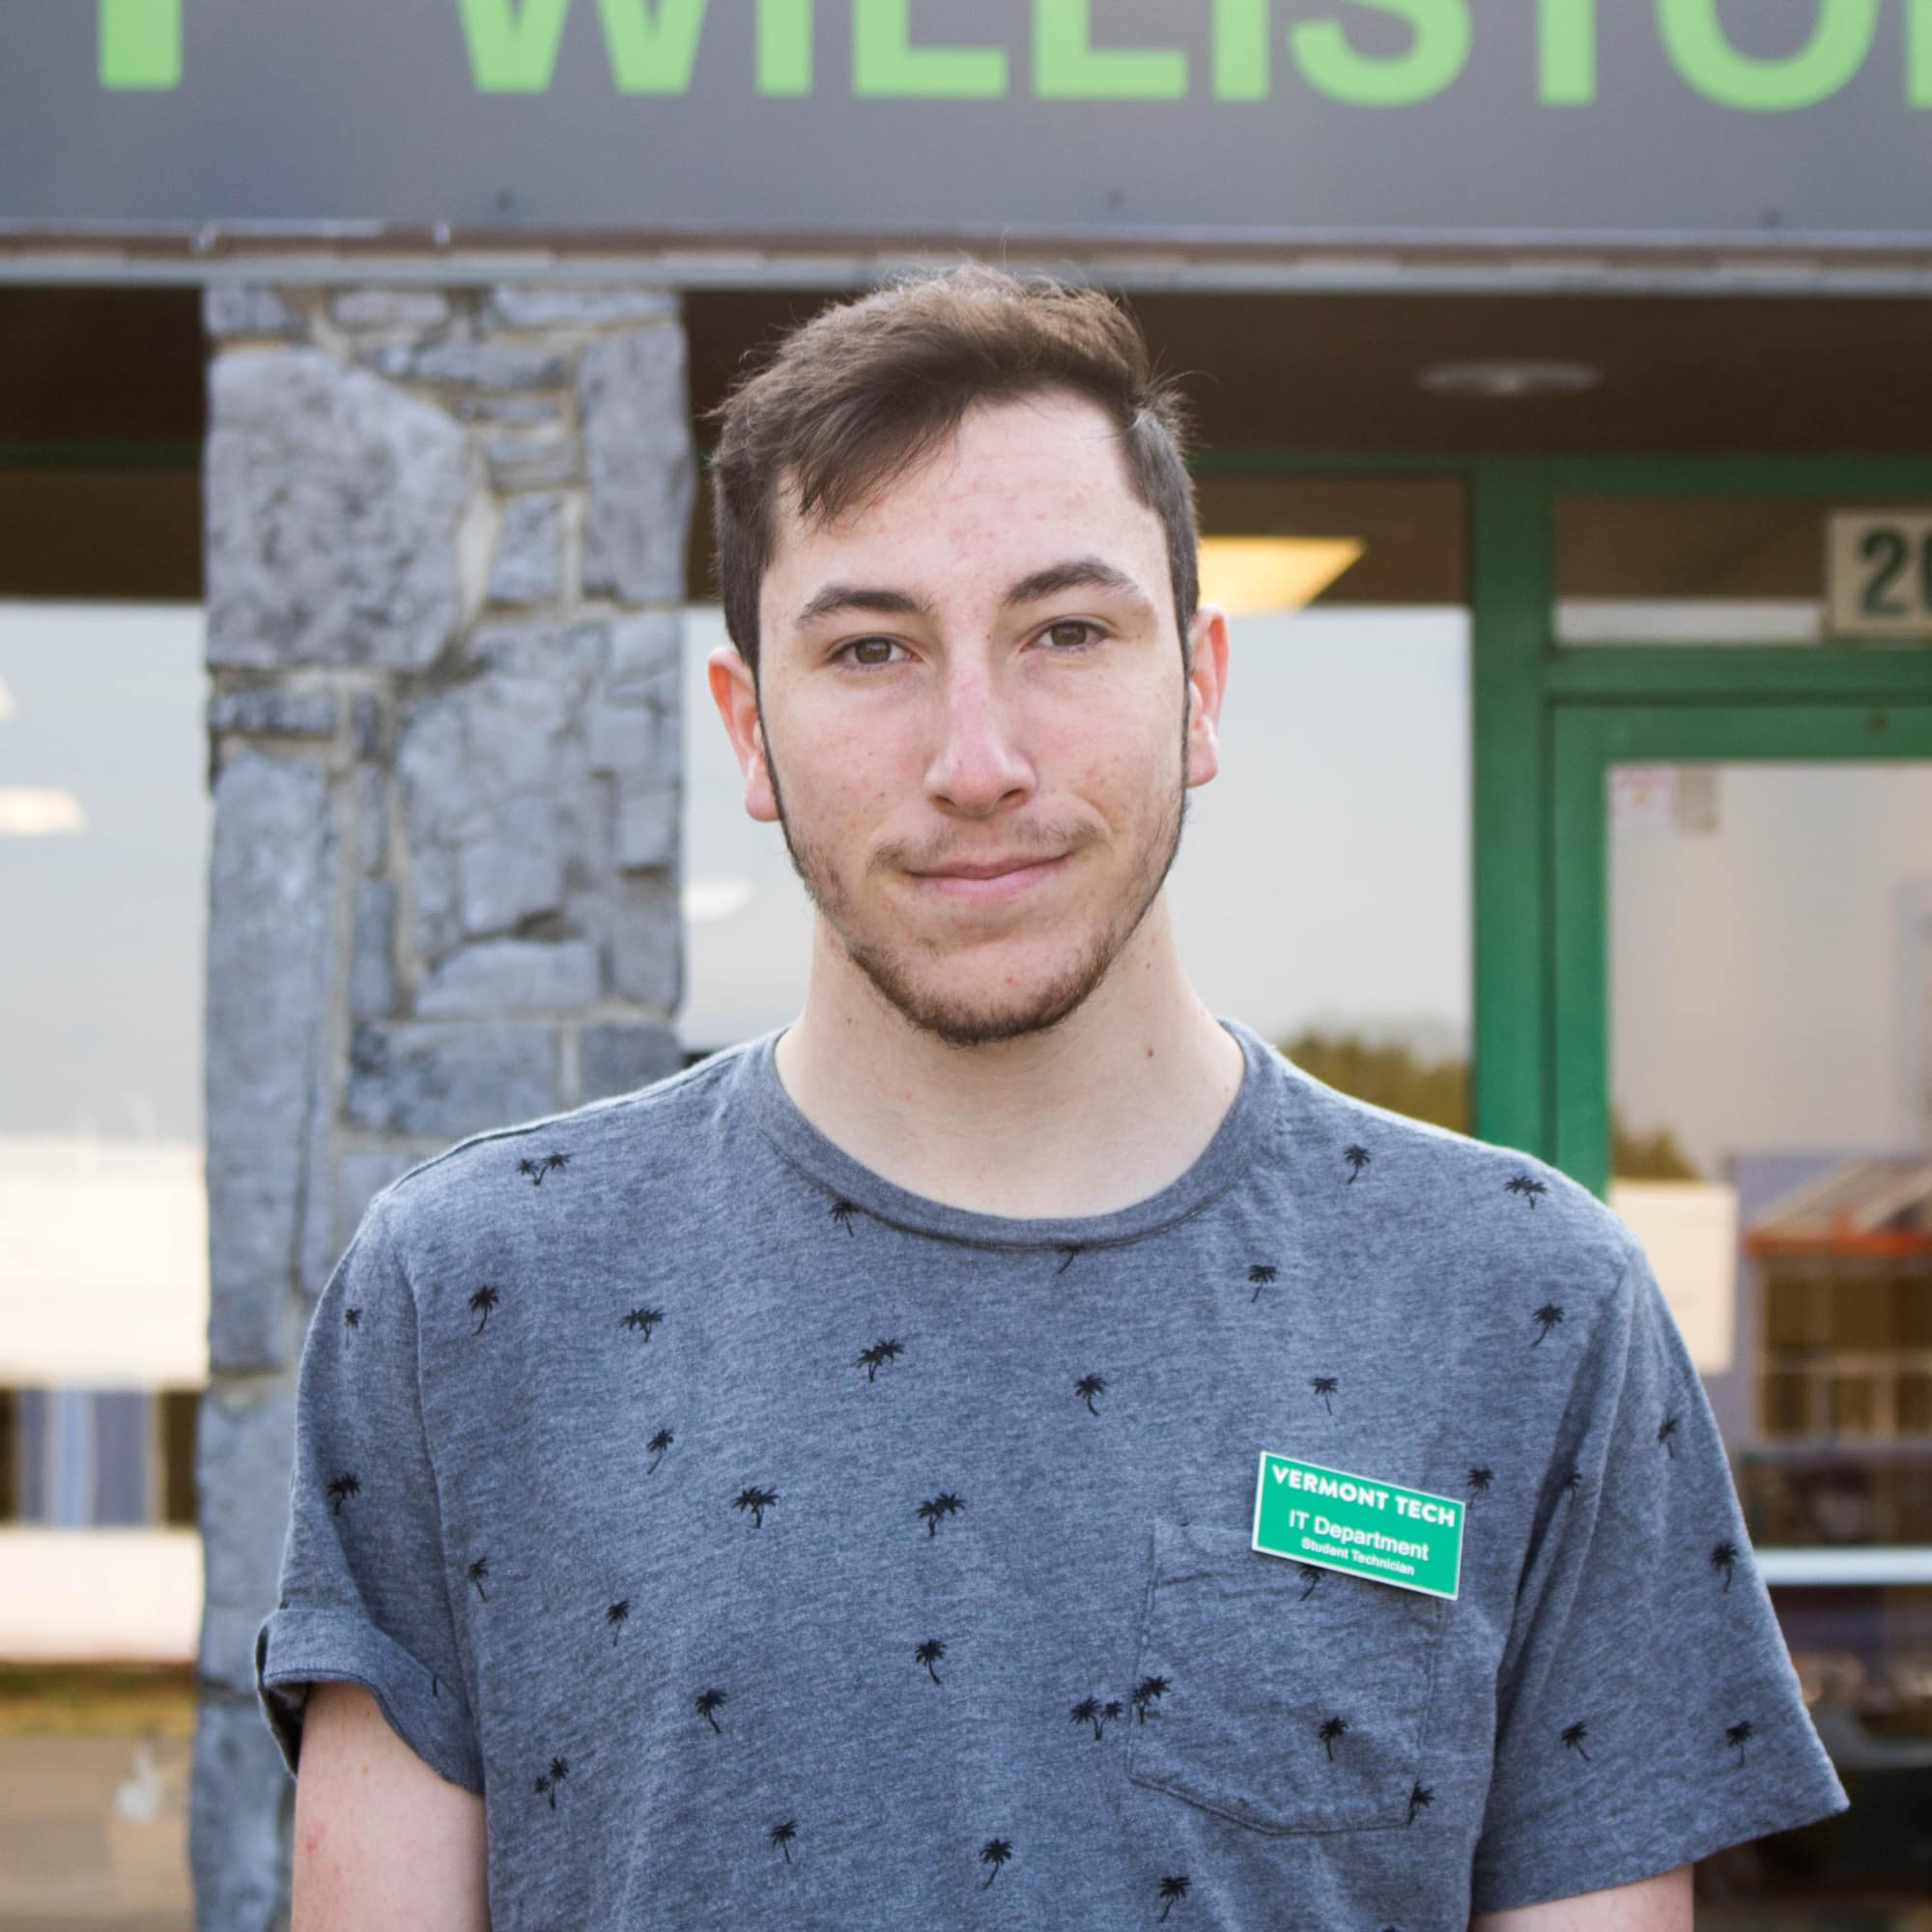 Kiernan Canavan, student at Williston Campus